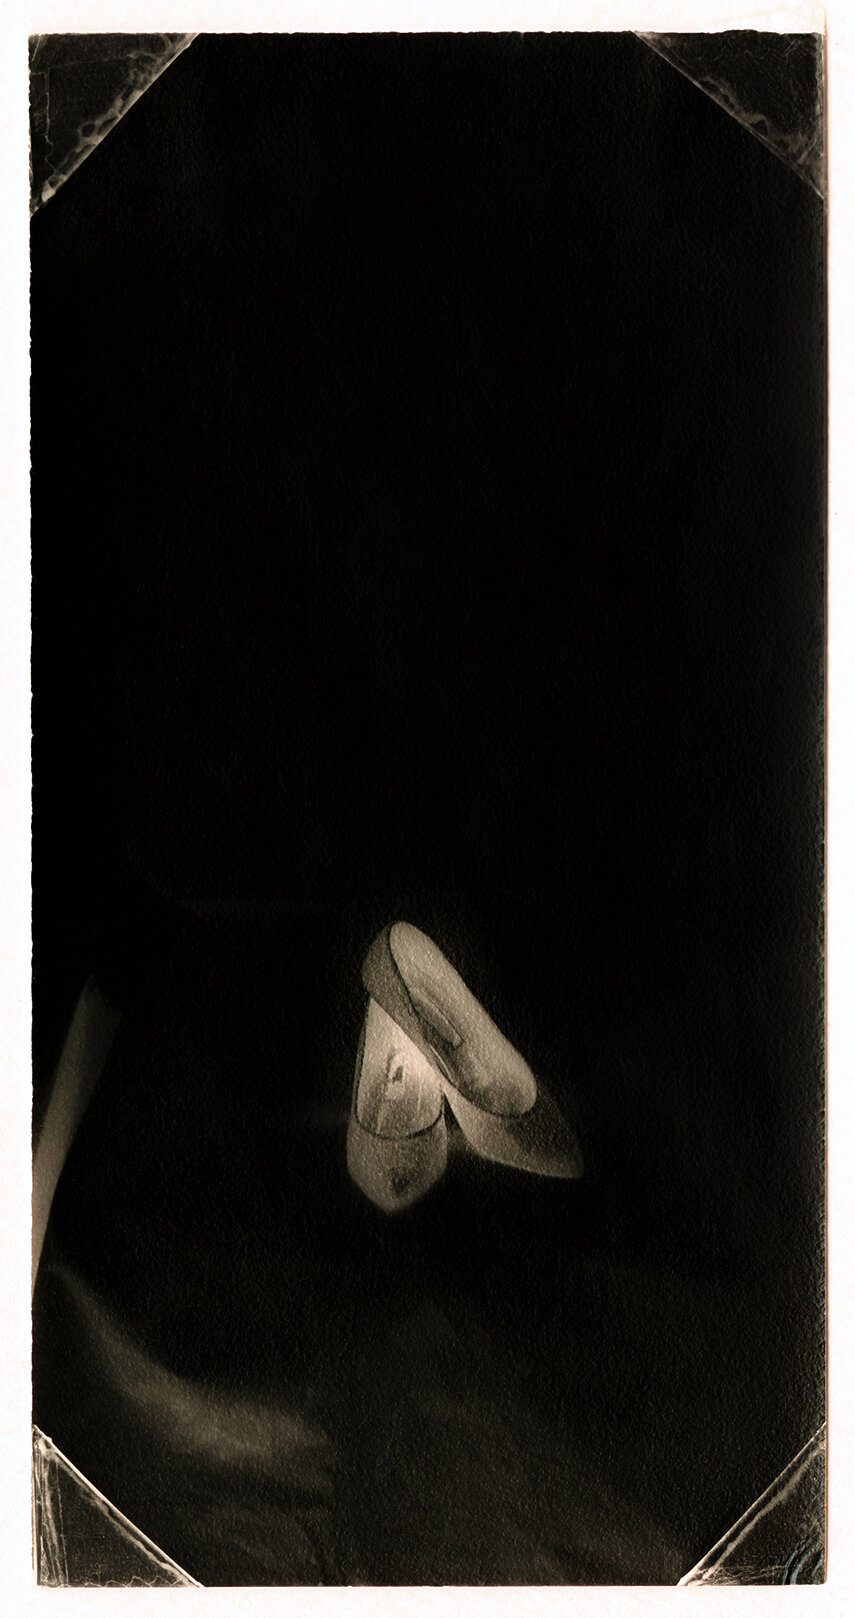 Untitled (Shoes) . Toned gelatin silver print. 3 1/2 x 1 1/2 in.